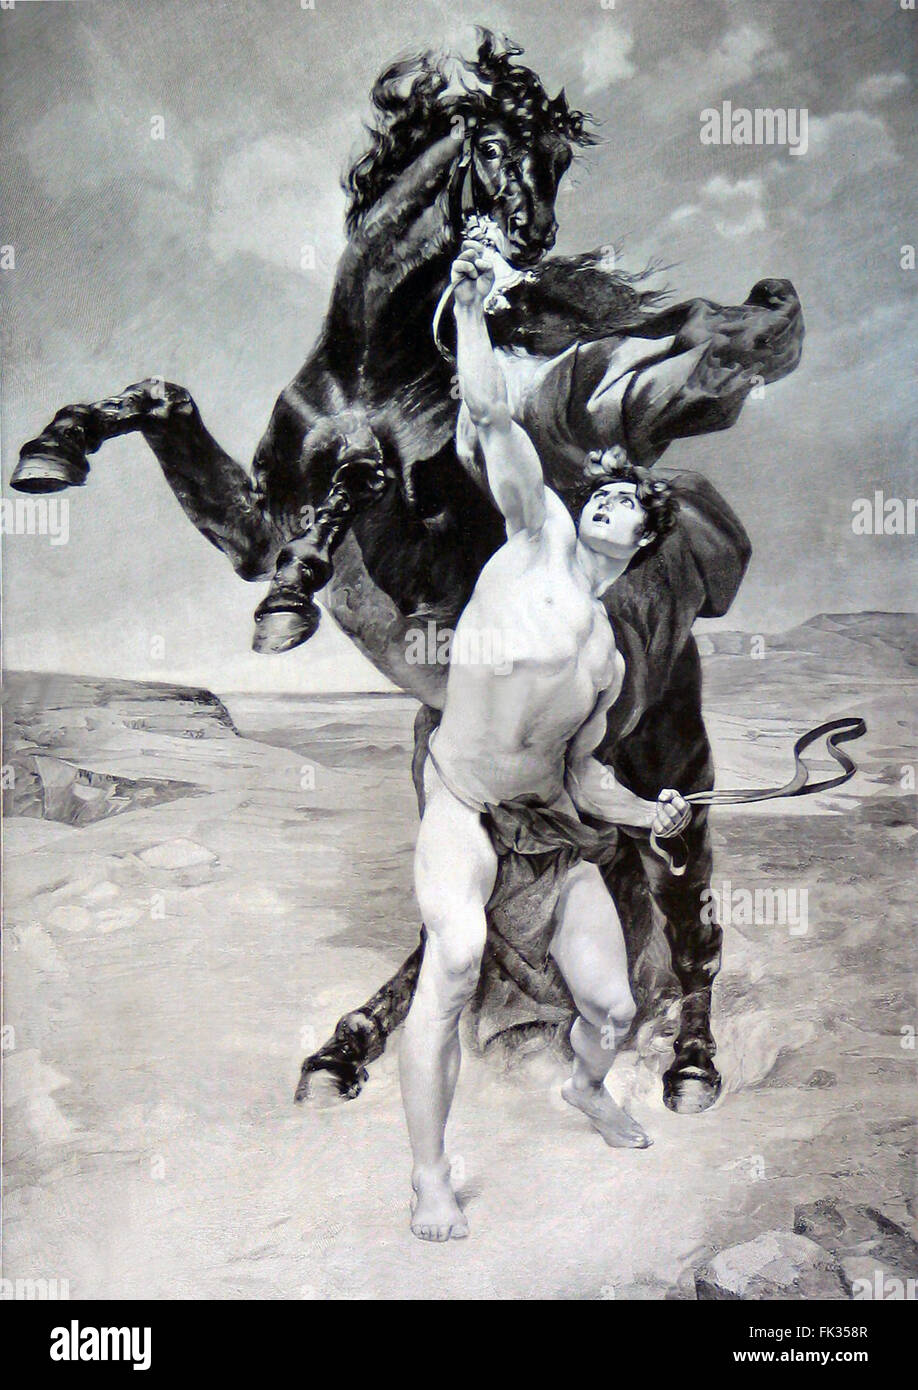 Engraving of Alexander the Great taming the horse Bucephalus from a drawing by F. Schommer in the late 19th century. - Stock Image